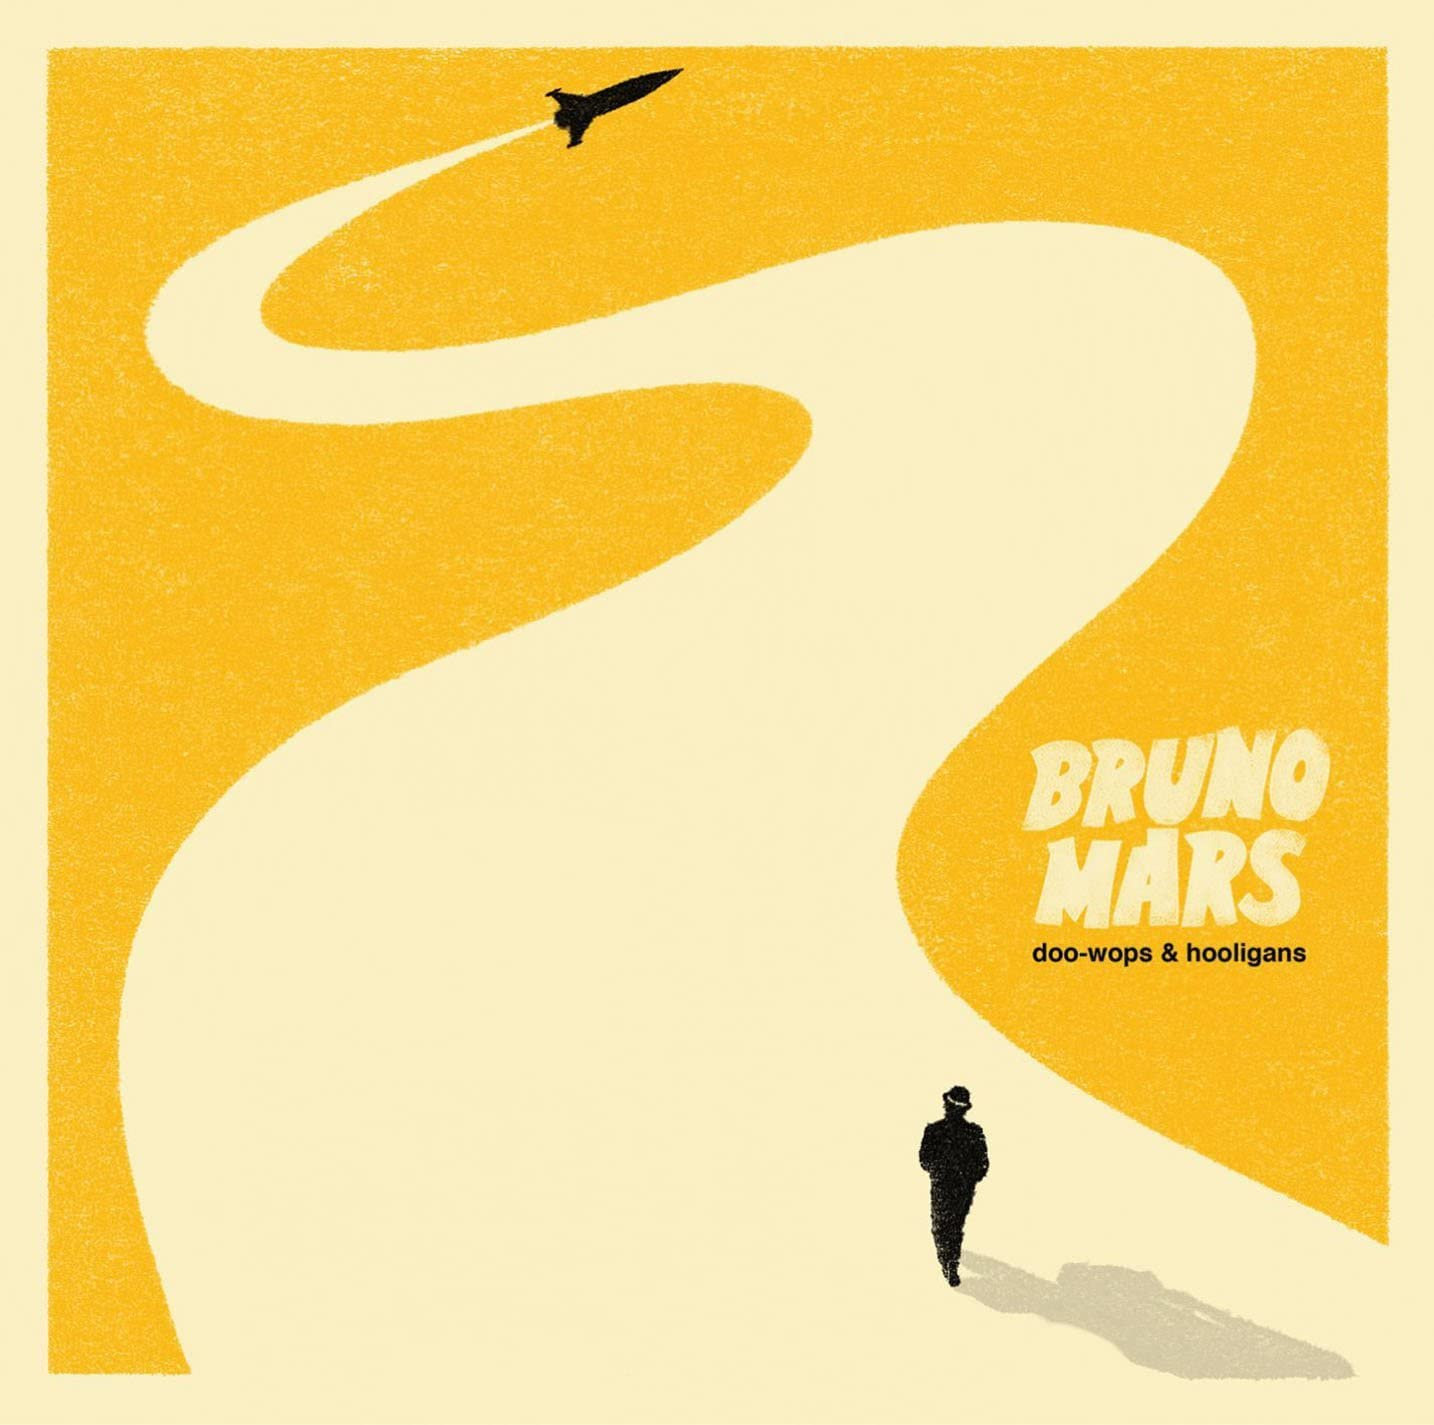 Bruno Mars - Doo-Wops & Hooligans (Limited Edition, Geel Vinyl) (LP)